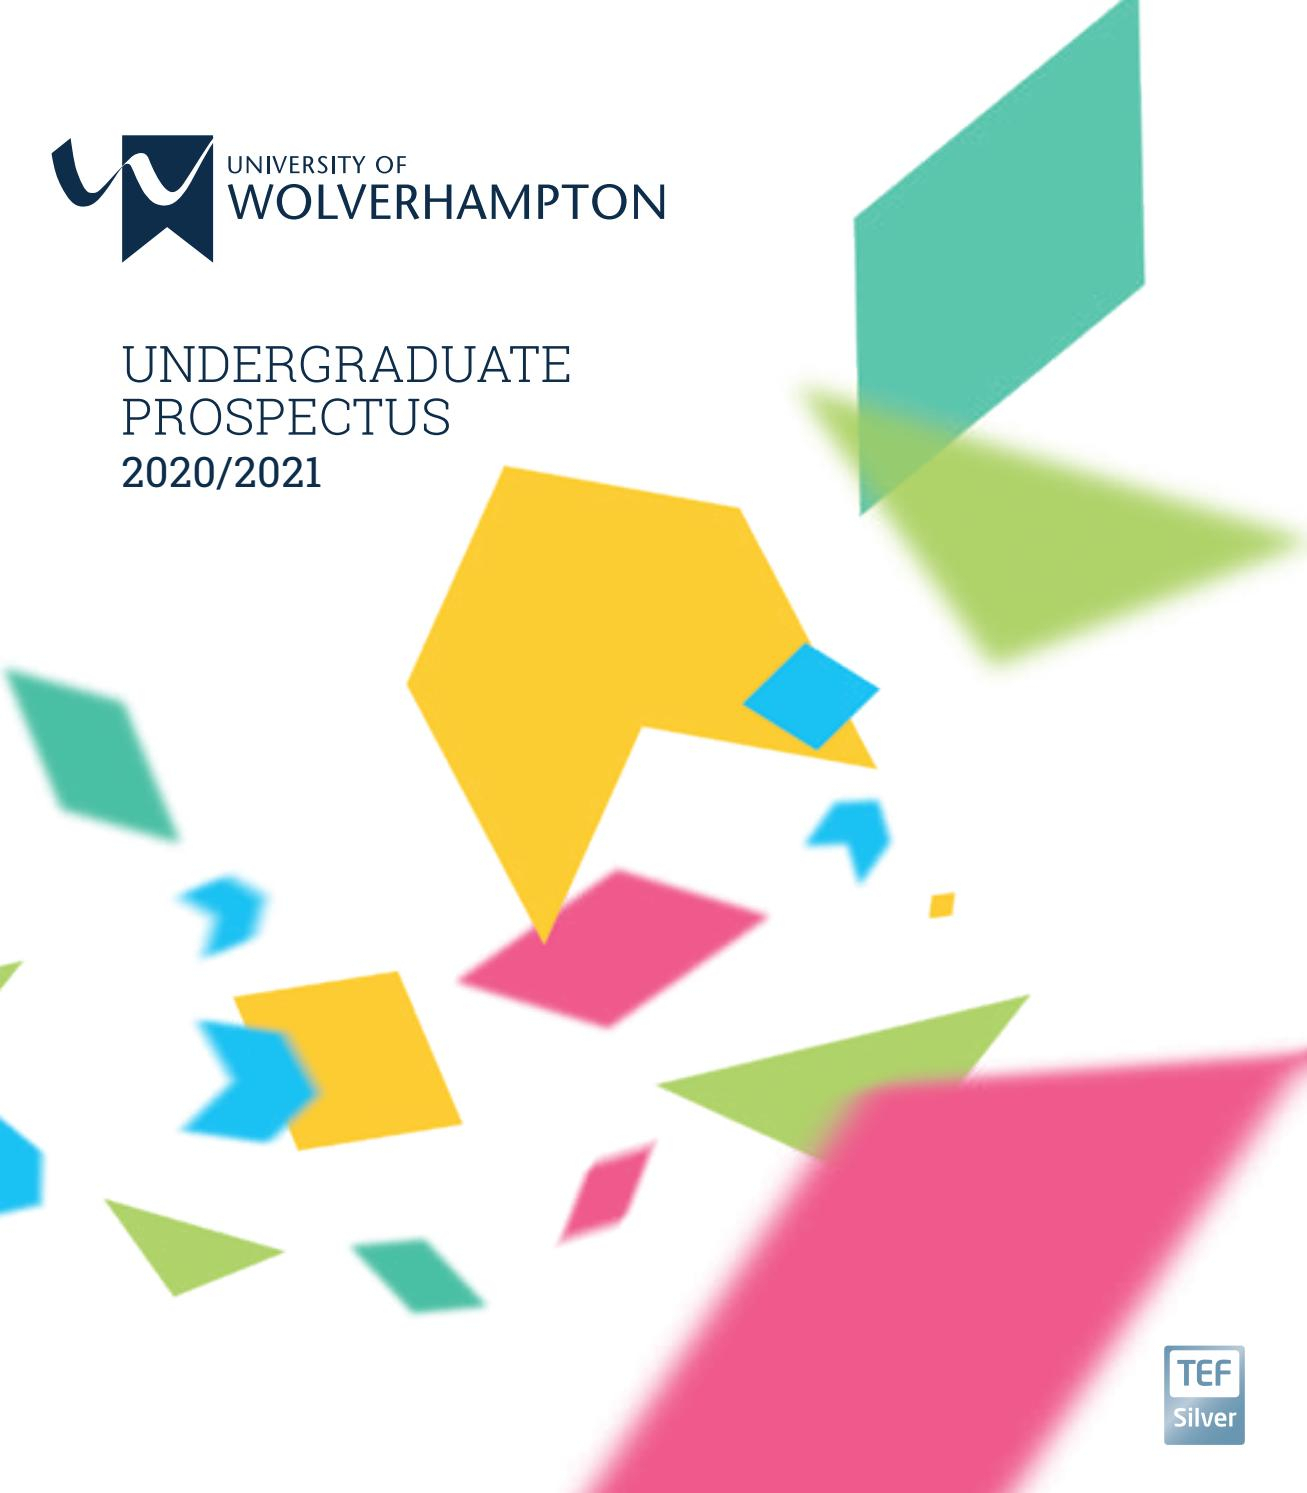 Undergraduate Prospectus 2020/2021 By University Of